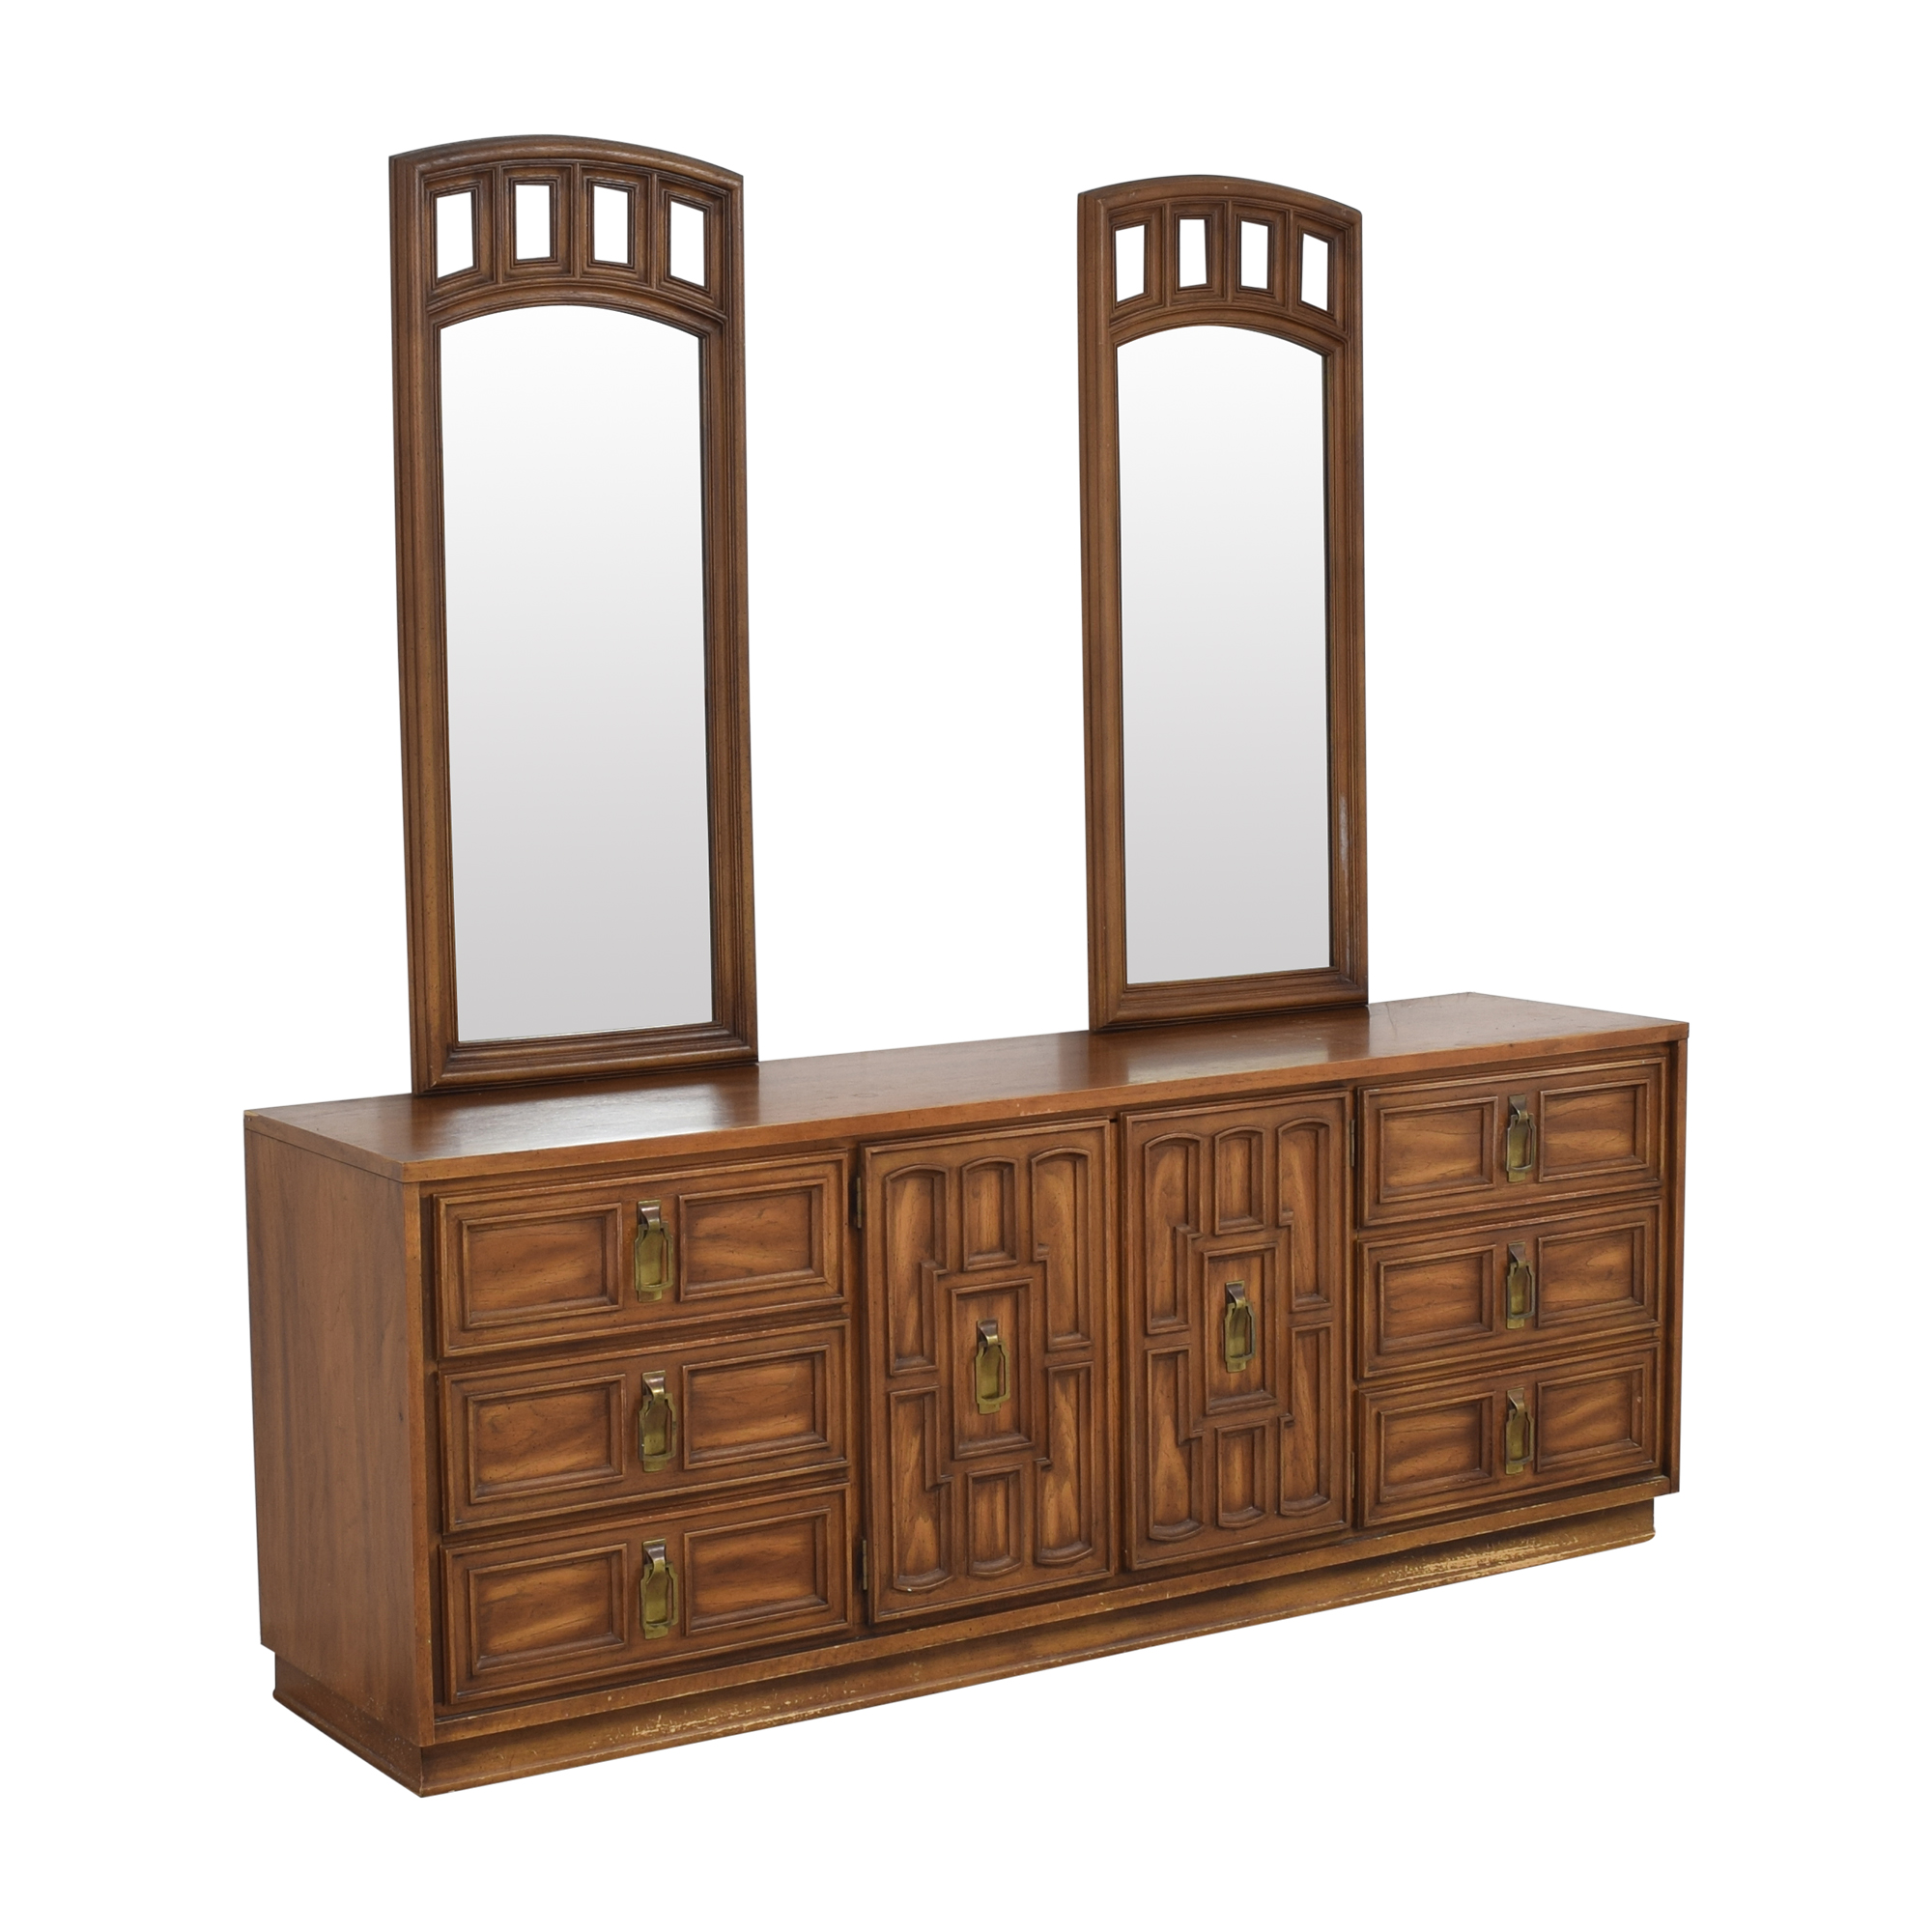 Stanley Furniture Stanley Furniture Triple Dresser with Mirrors for sale